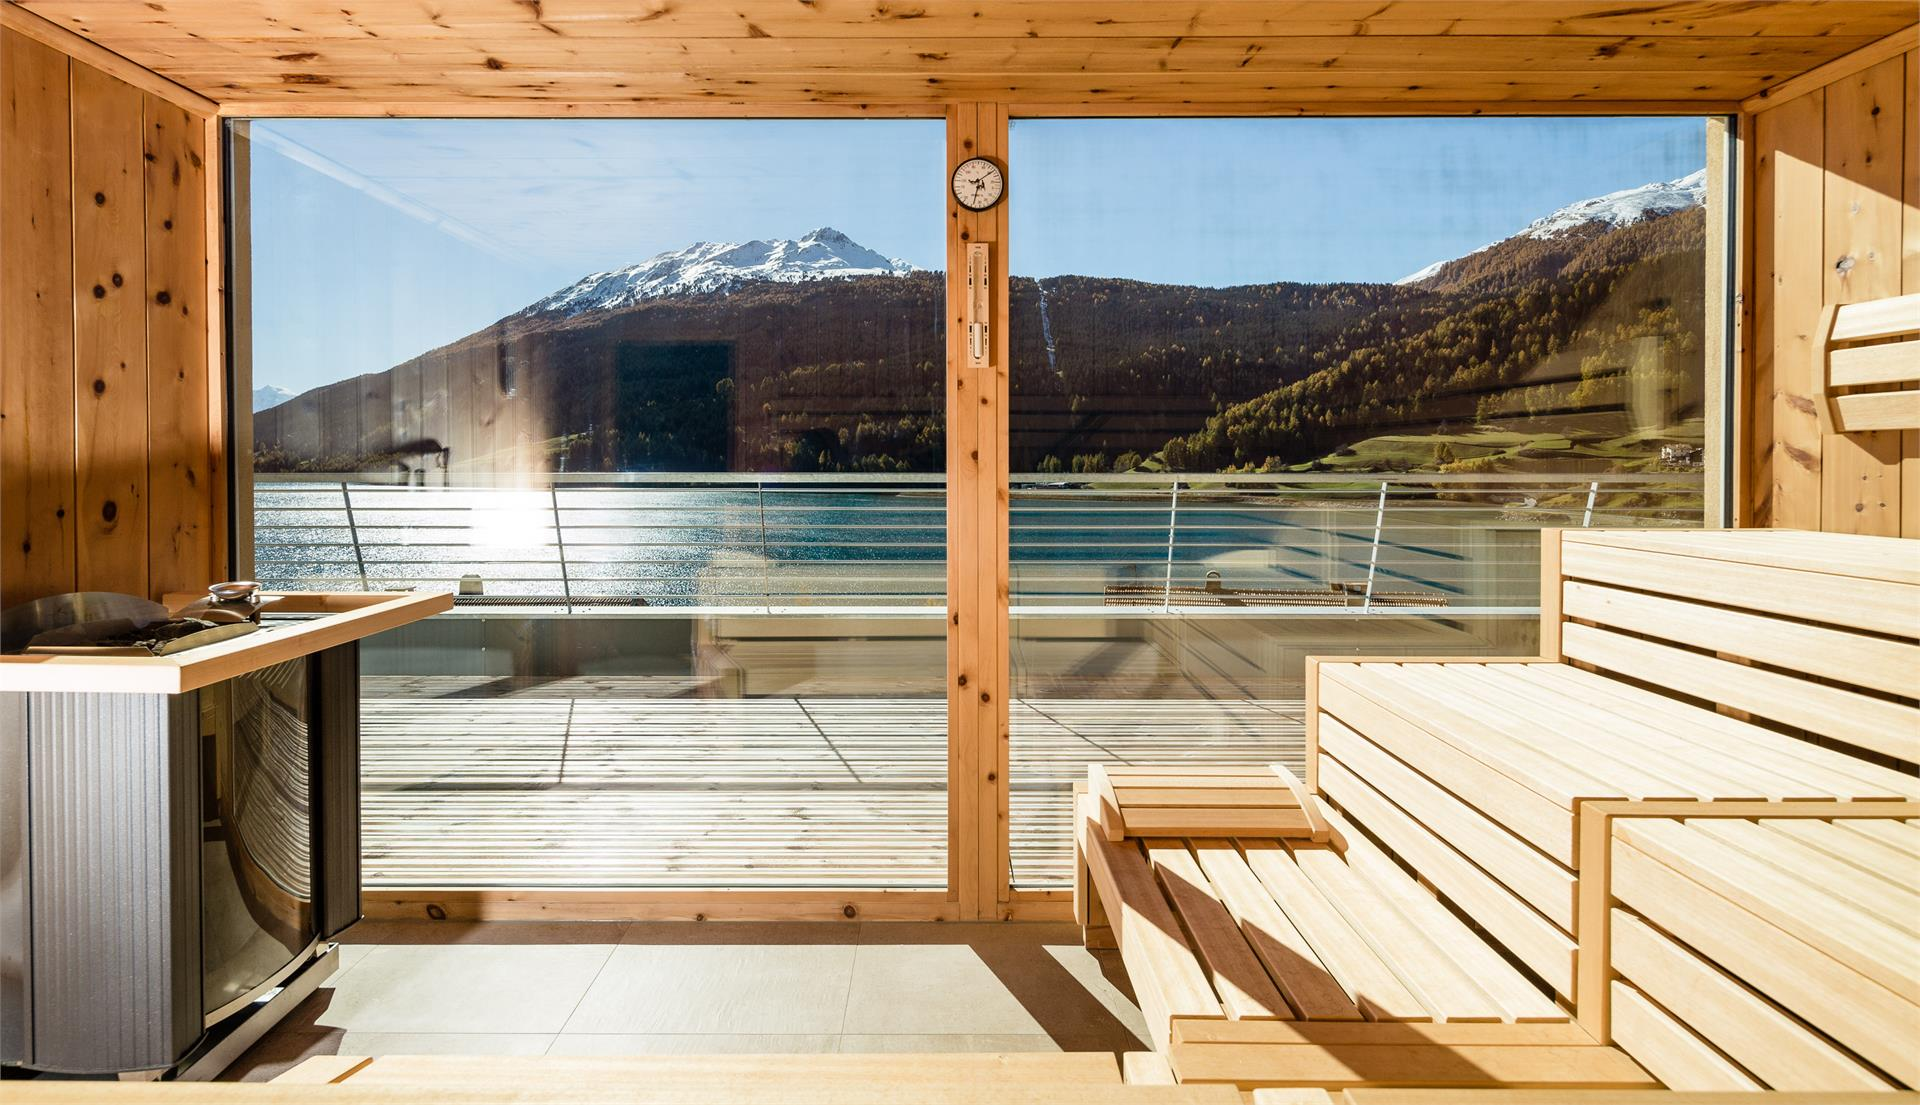 Bio Zirm Panorama Sauna con view on the lake resia and the king Ortler